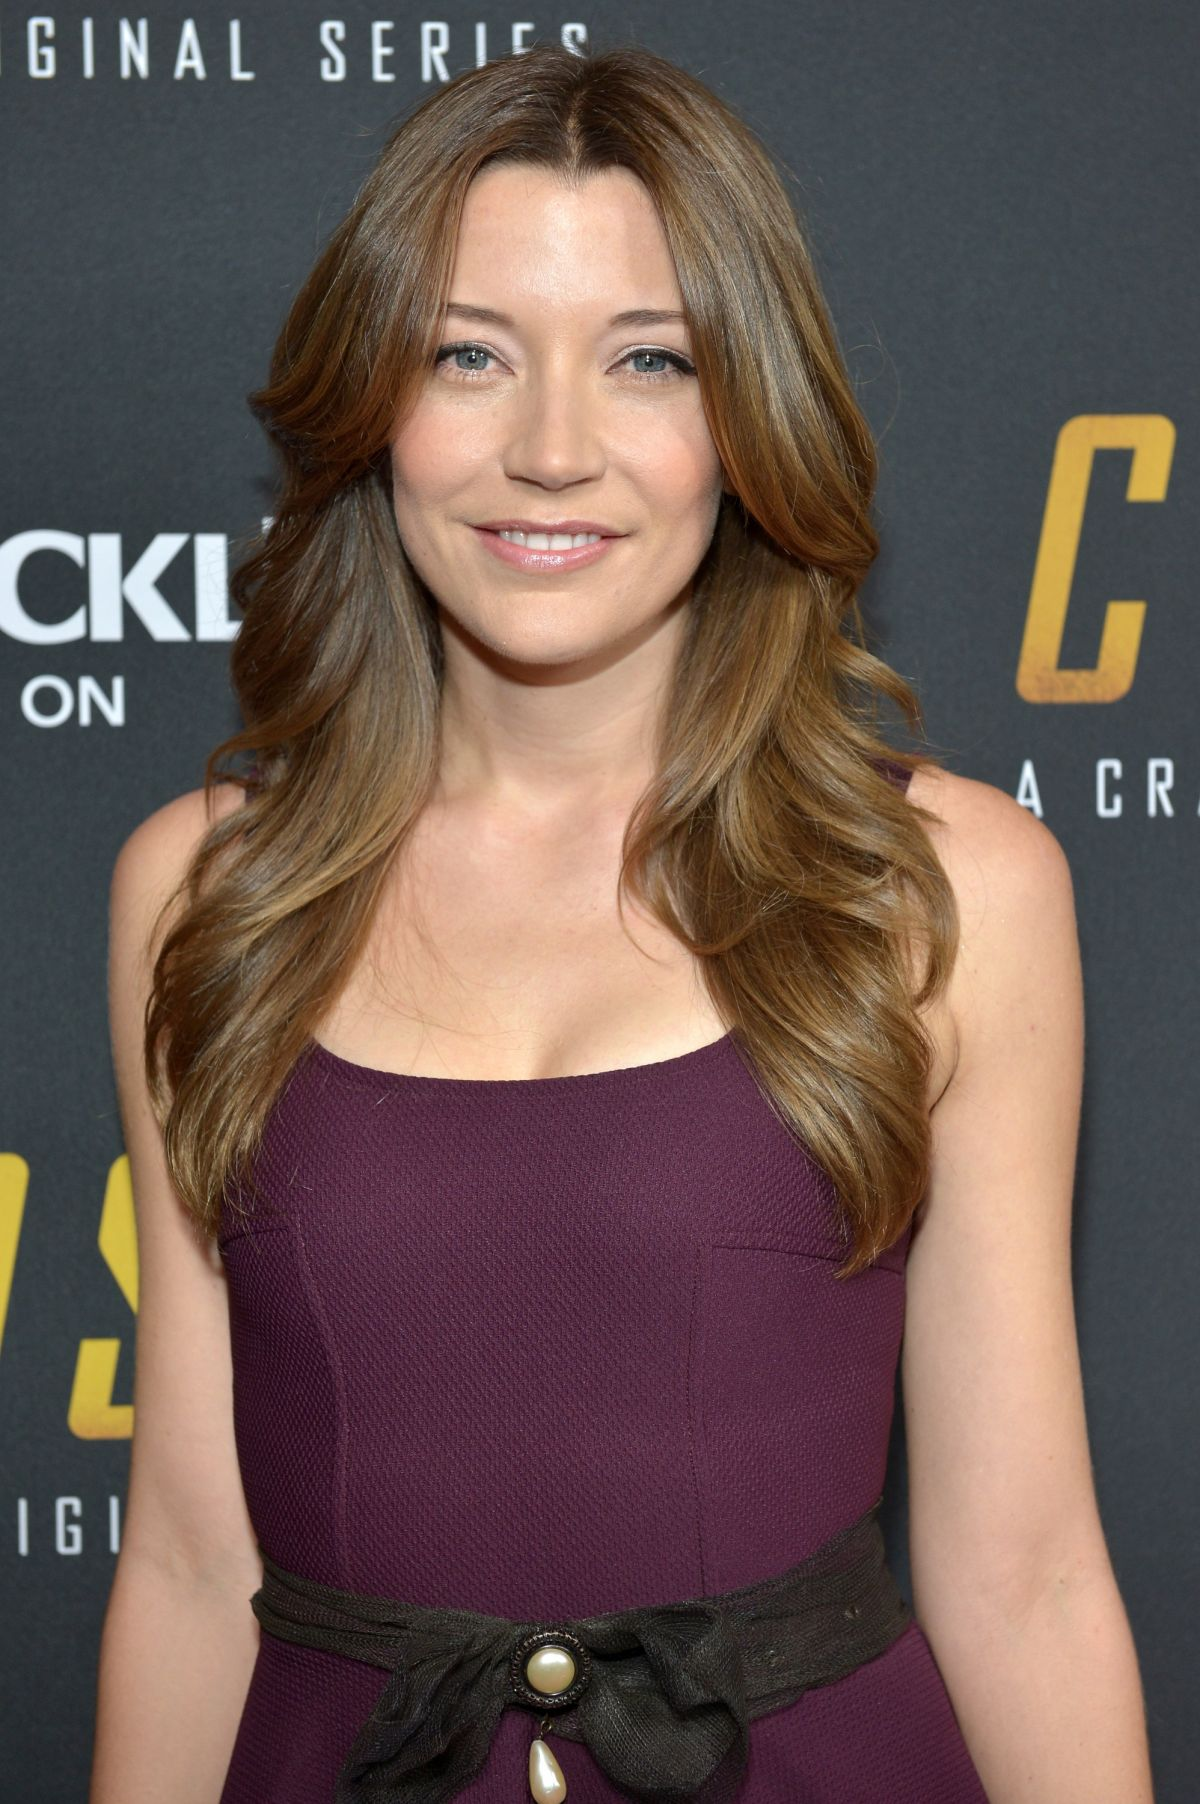 Sarah Roemer nude (76 photos), Tits, Cleavage, Boobs, bra 2015